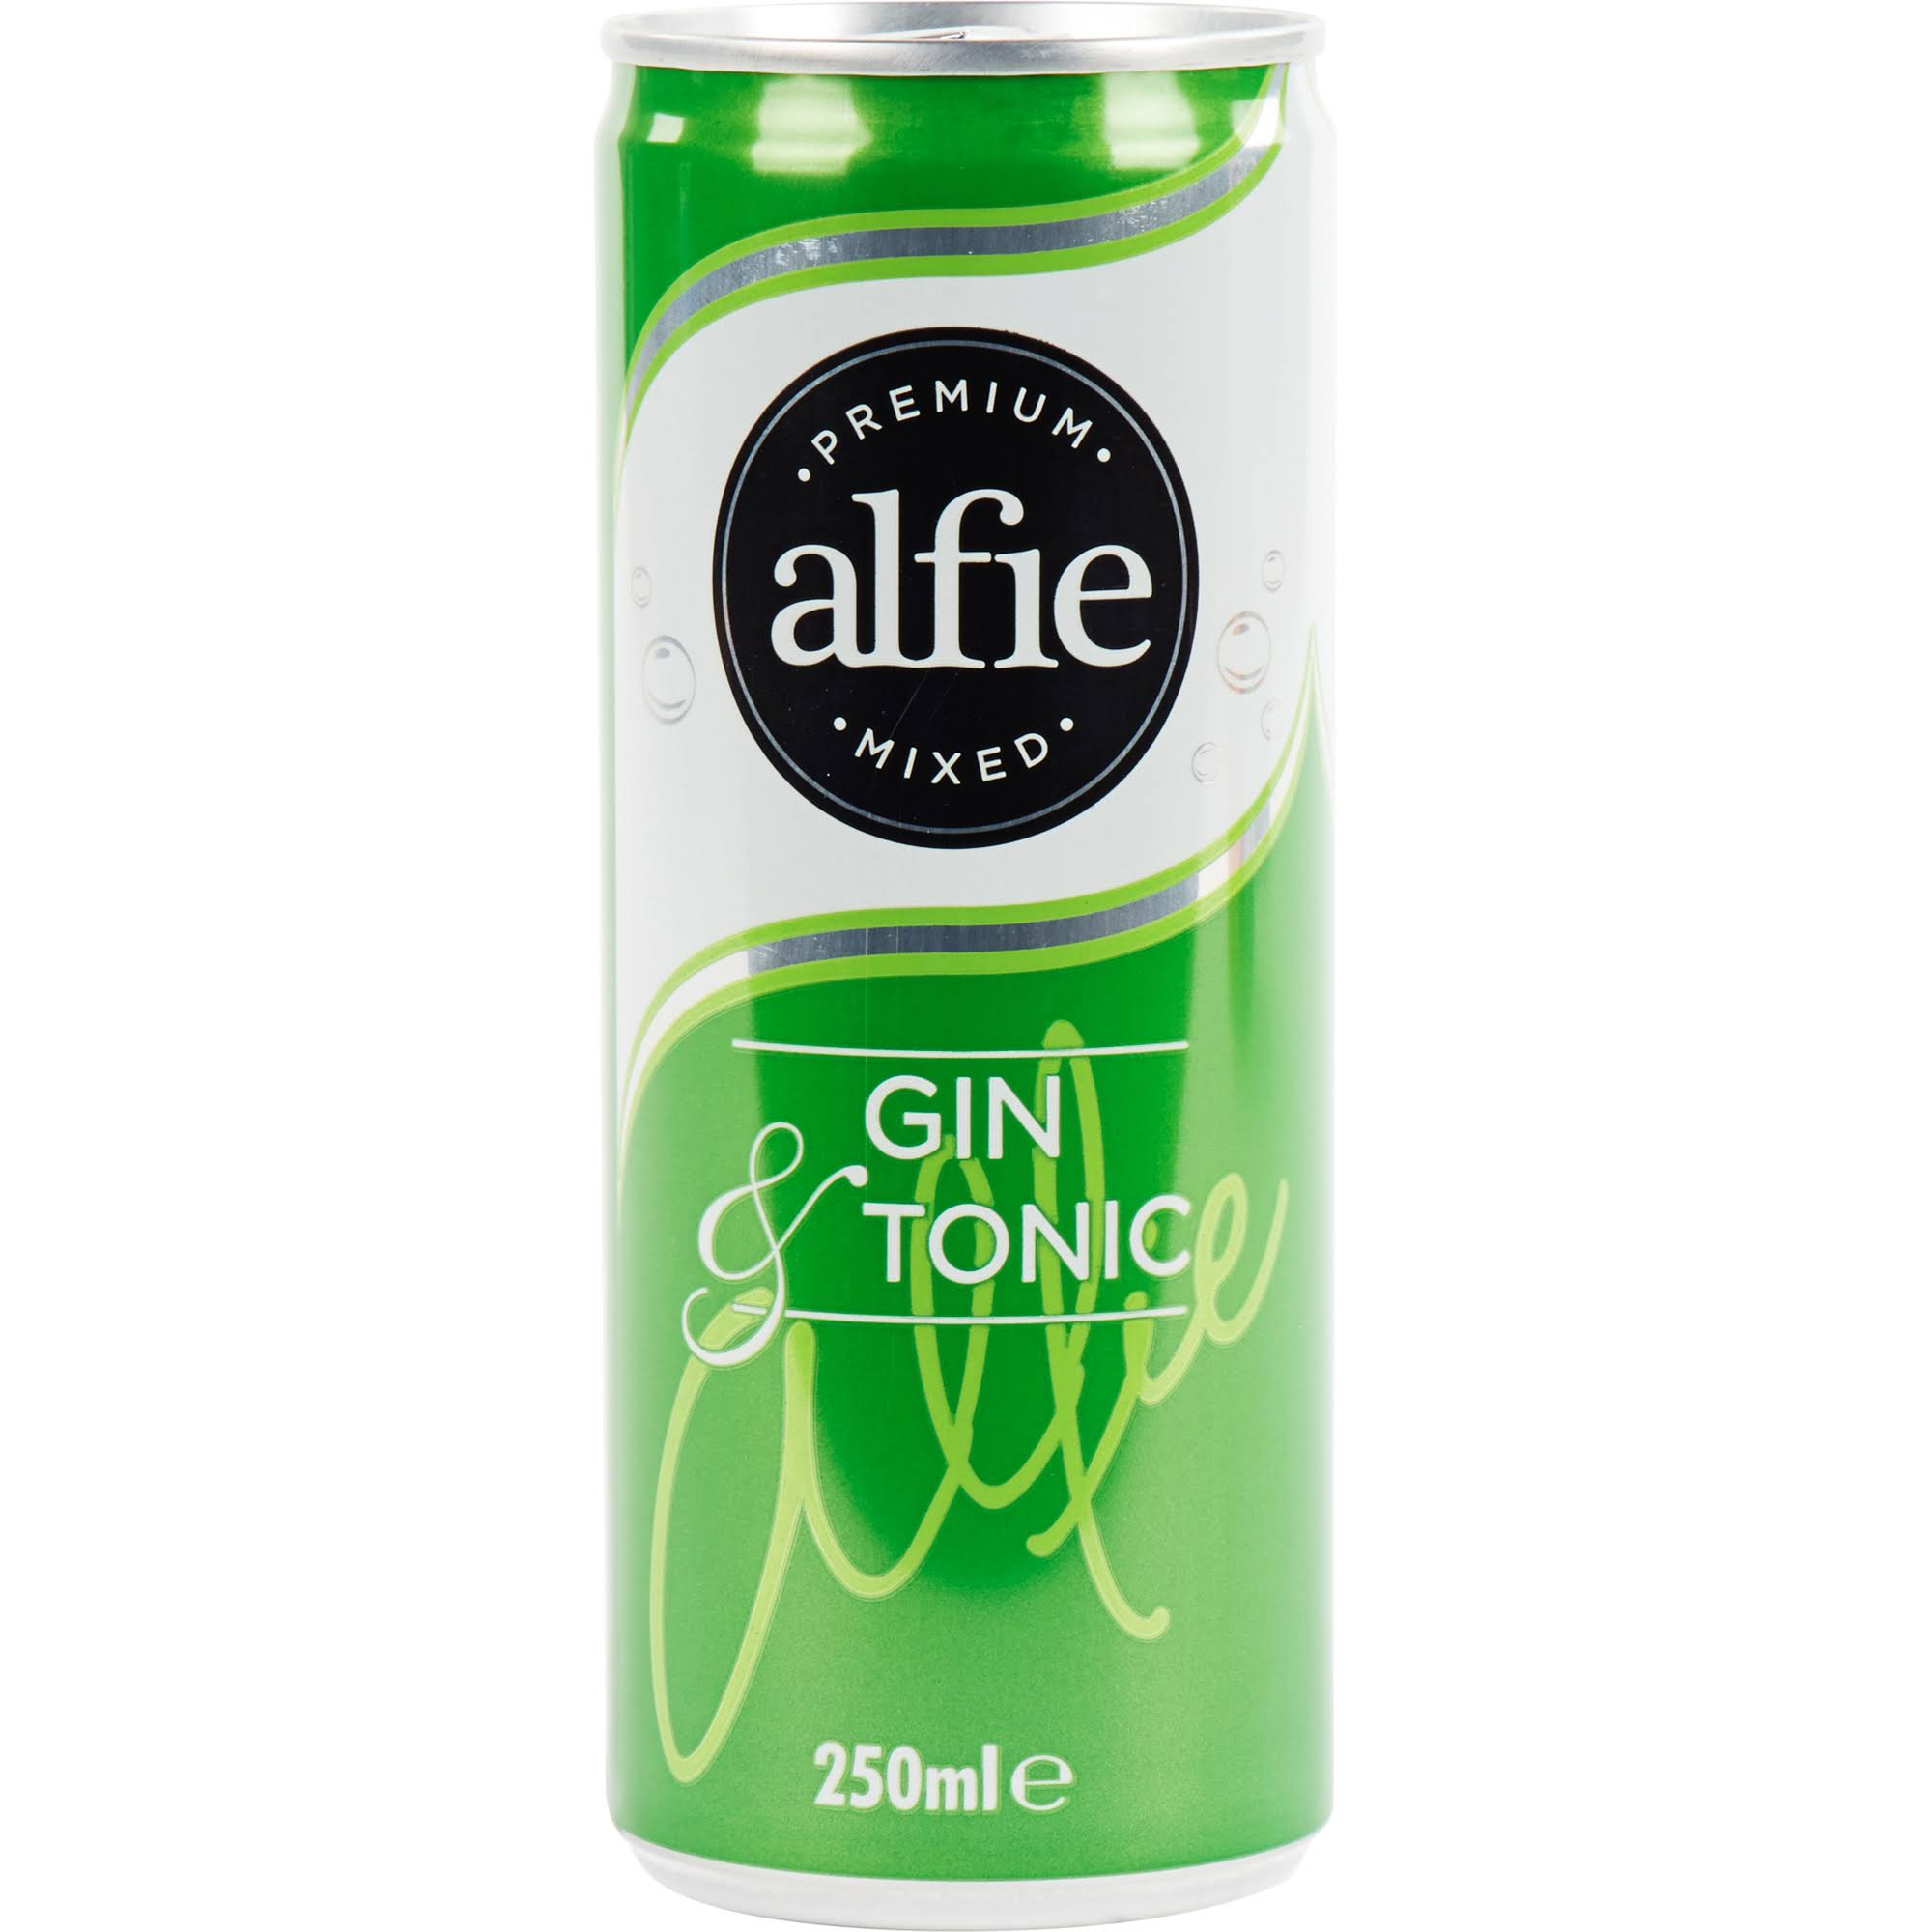 Alfie Premium Mixed Gin and Tonic - 250ml